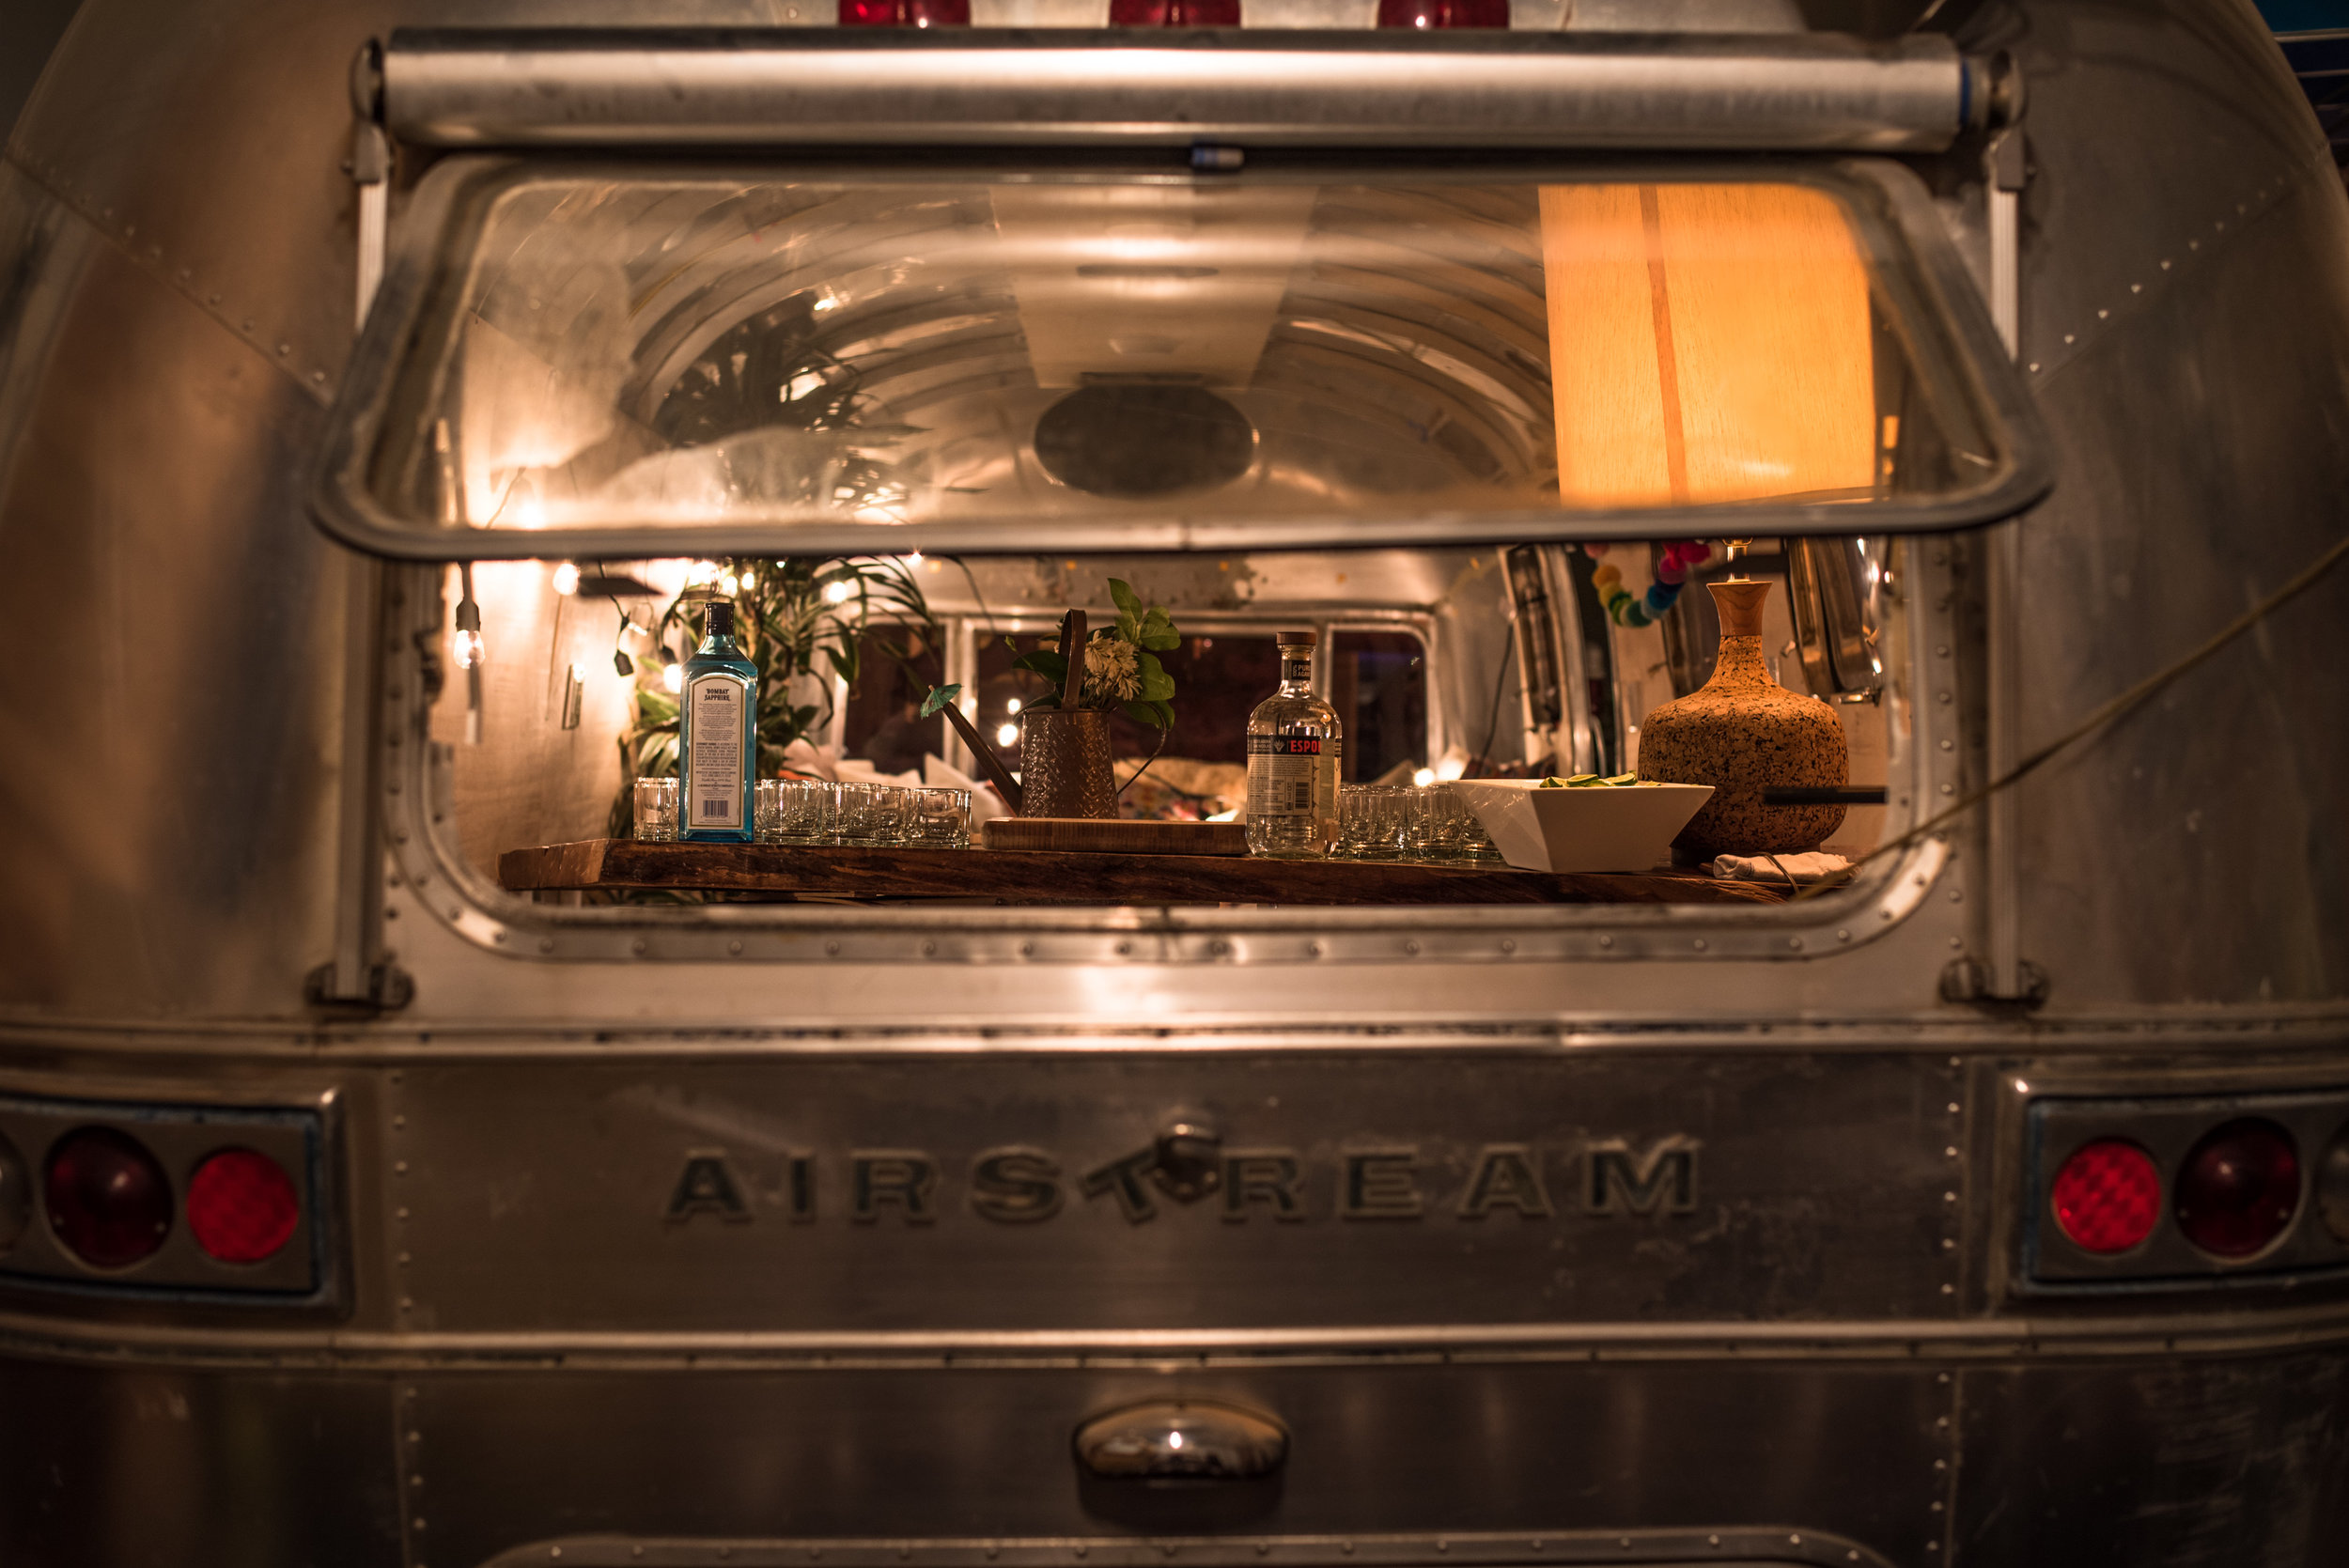 Airstream Bar - H2.jpg